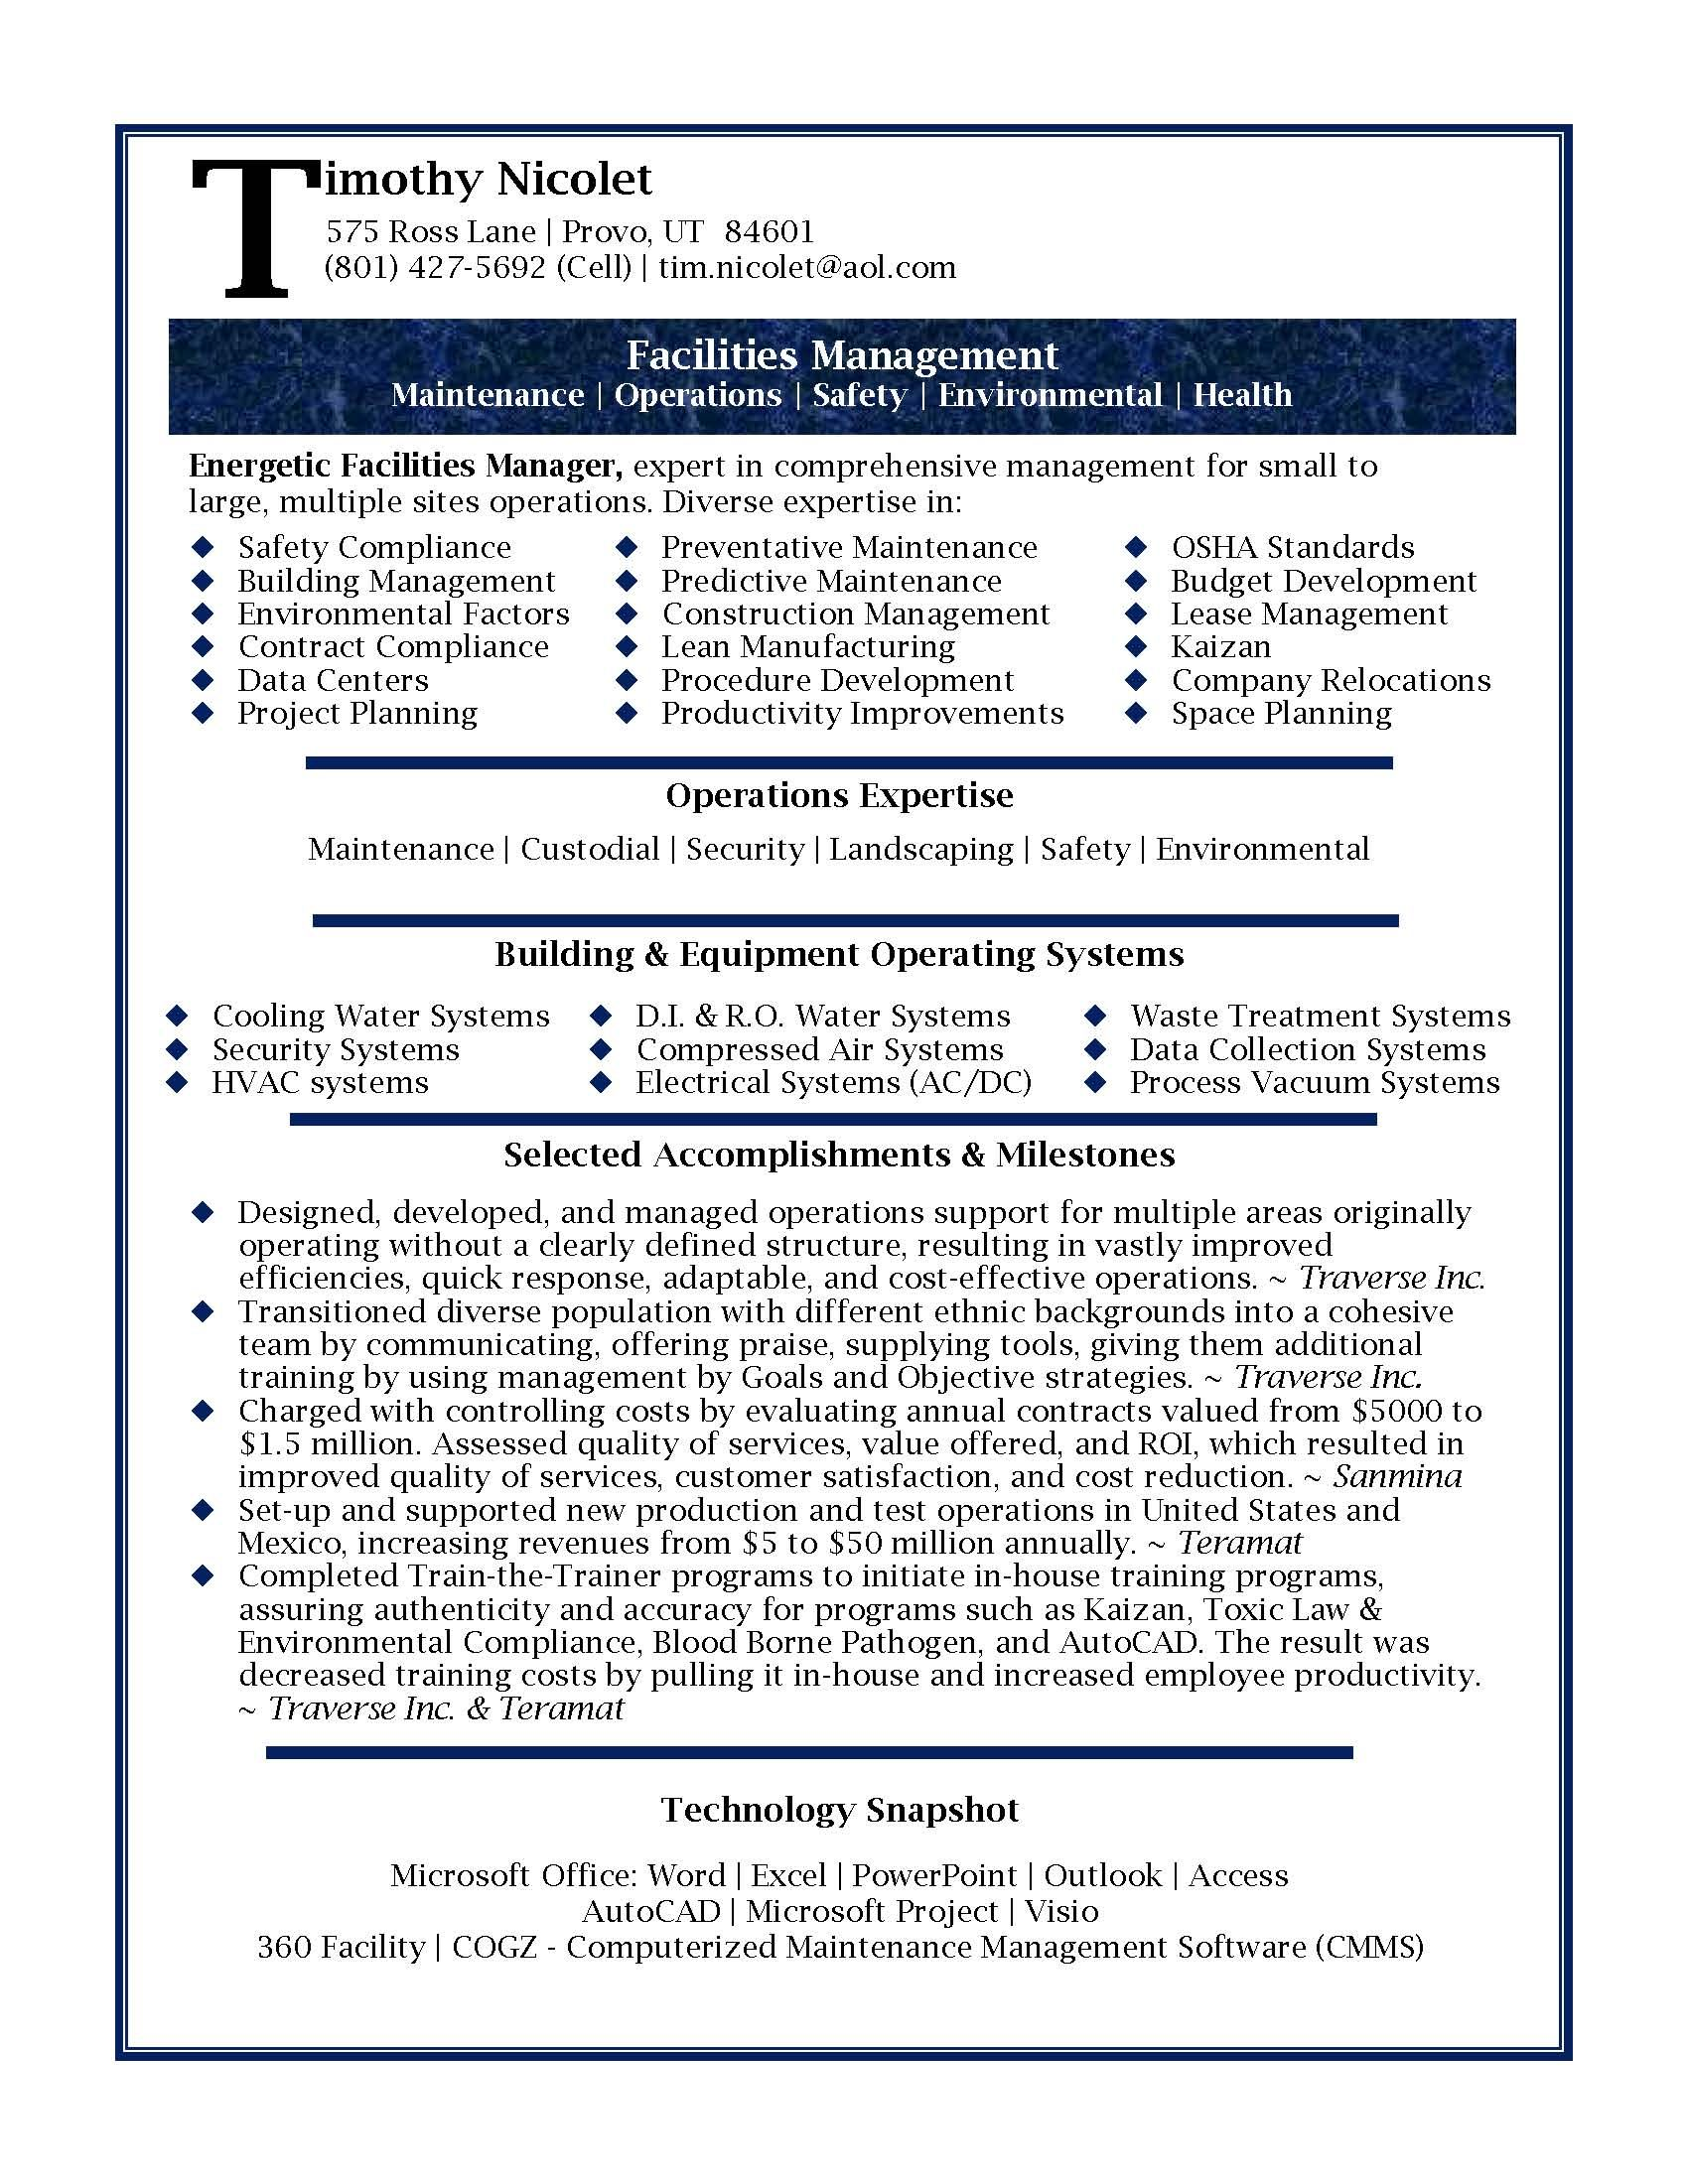 Professional Resume Samples by Julie Walraven, CMRW | work/school ...